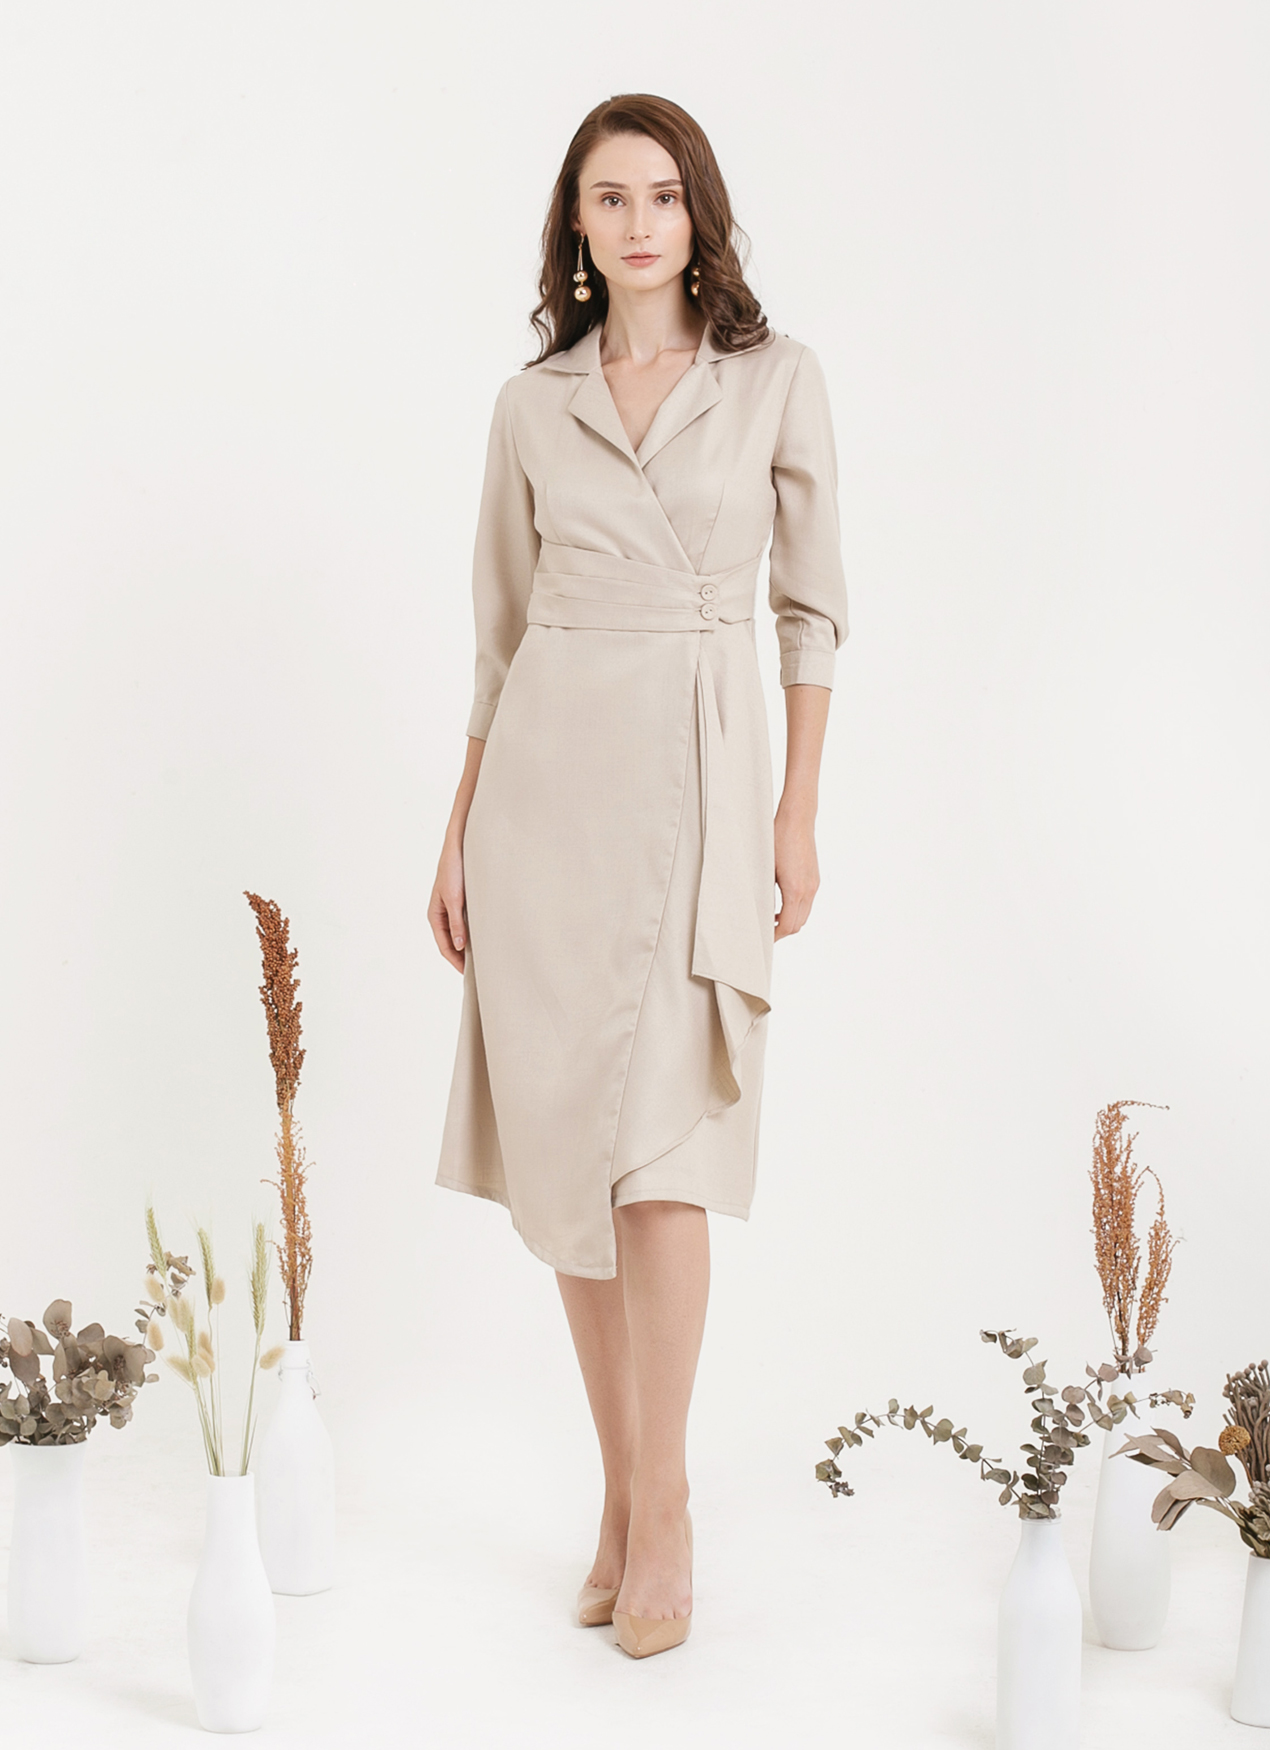 CLOTH INC Overlap Drapery Midi Dress - Light Beige